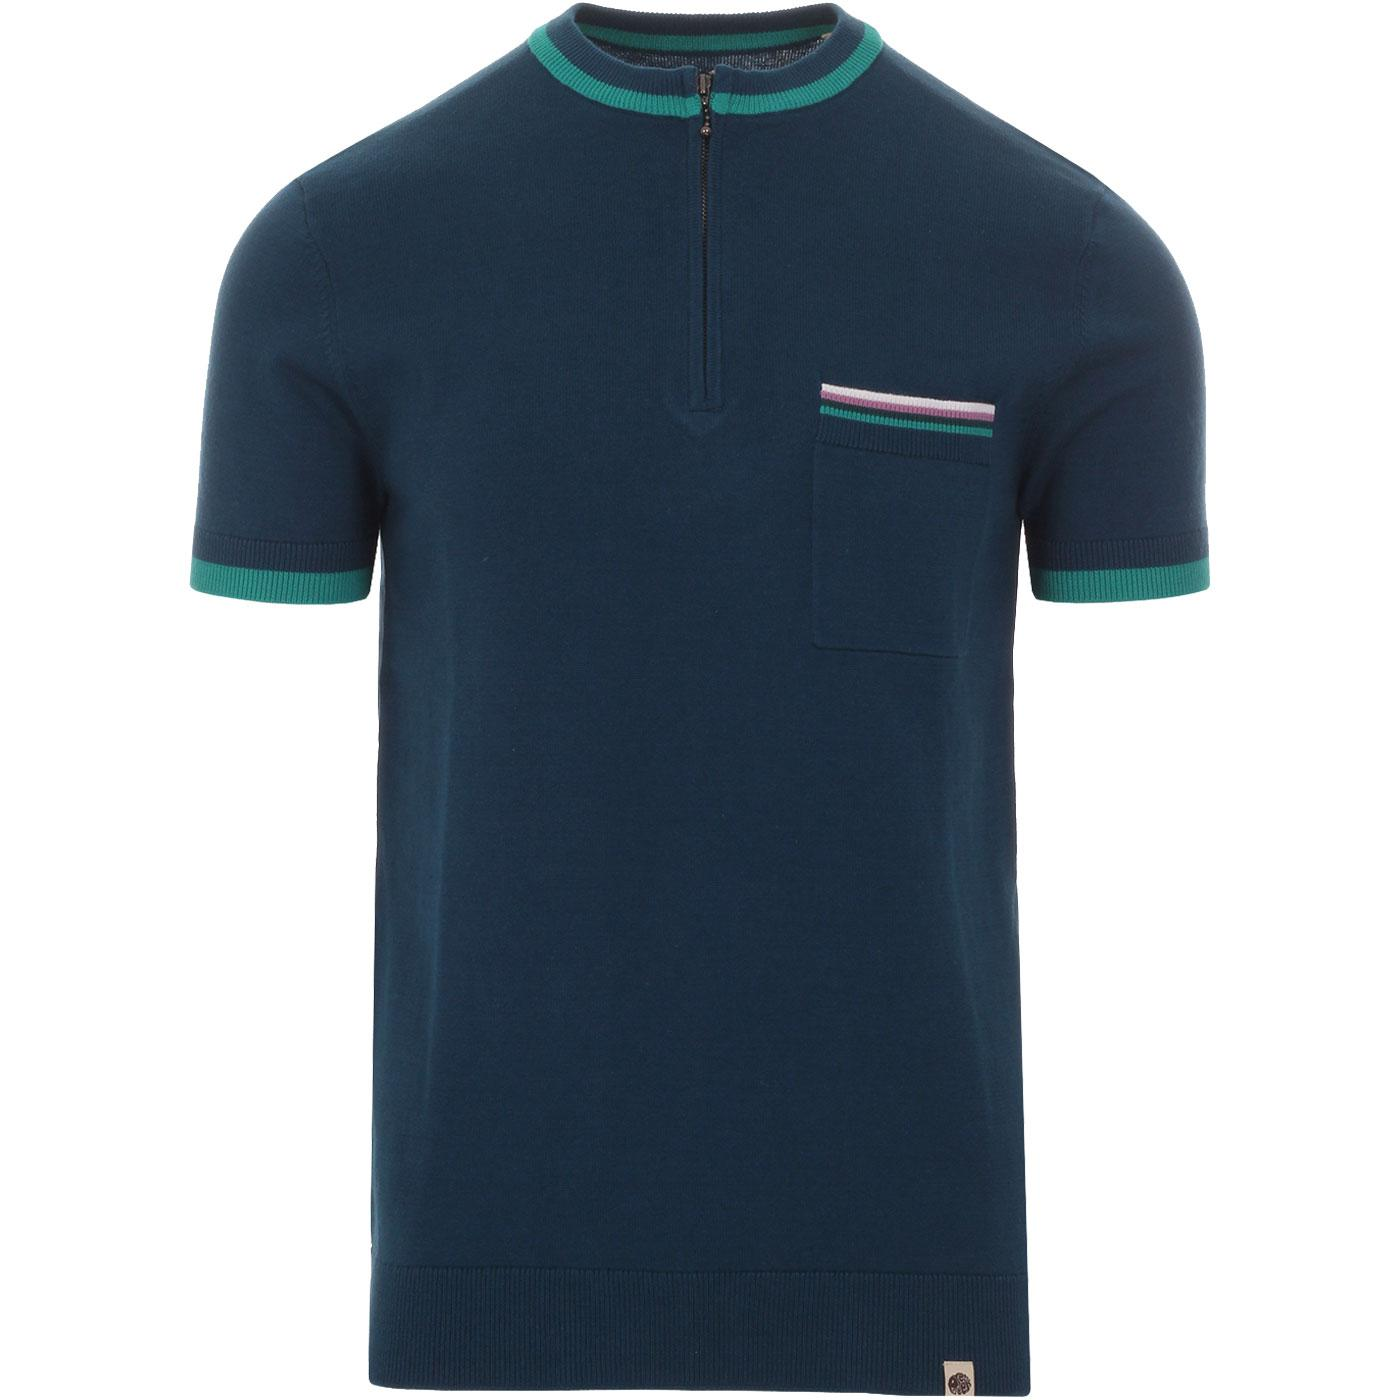 PRETTY GREEN Tipped Knitted Zip Neck Cycling Top